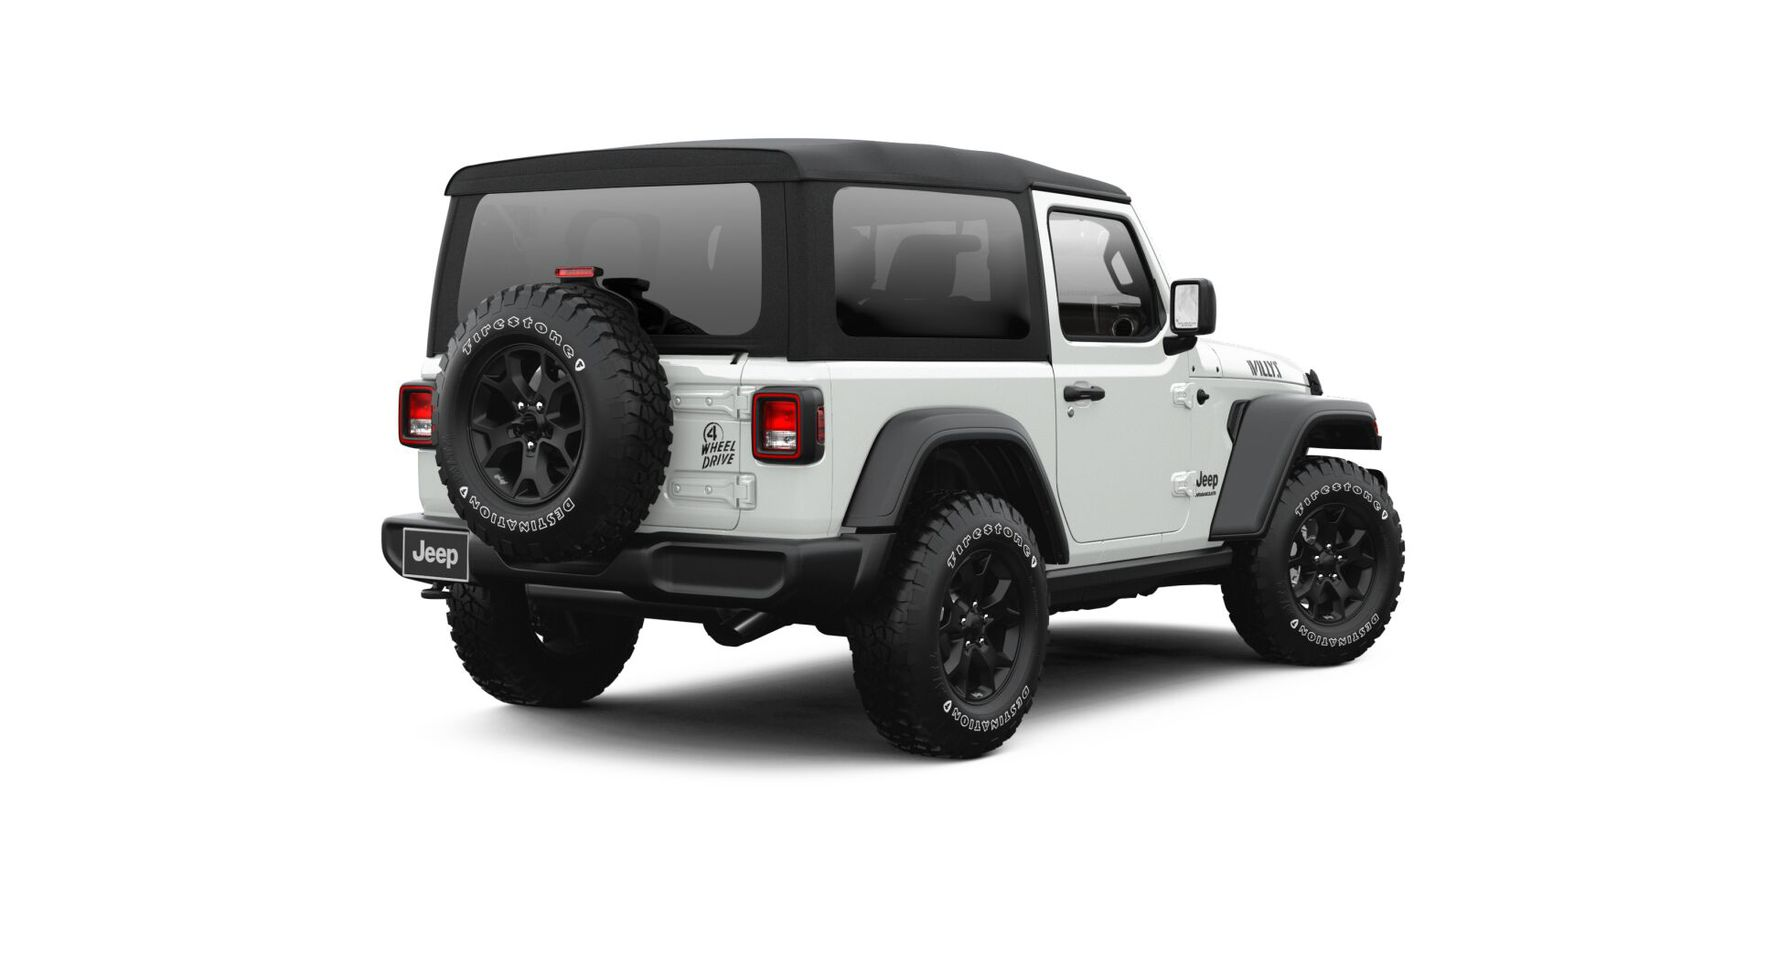 Jeep Wrangler 2021 Willys (двухдверная кабина)